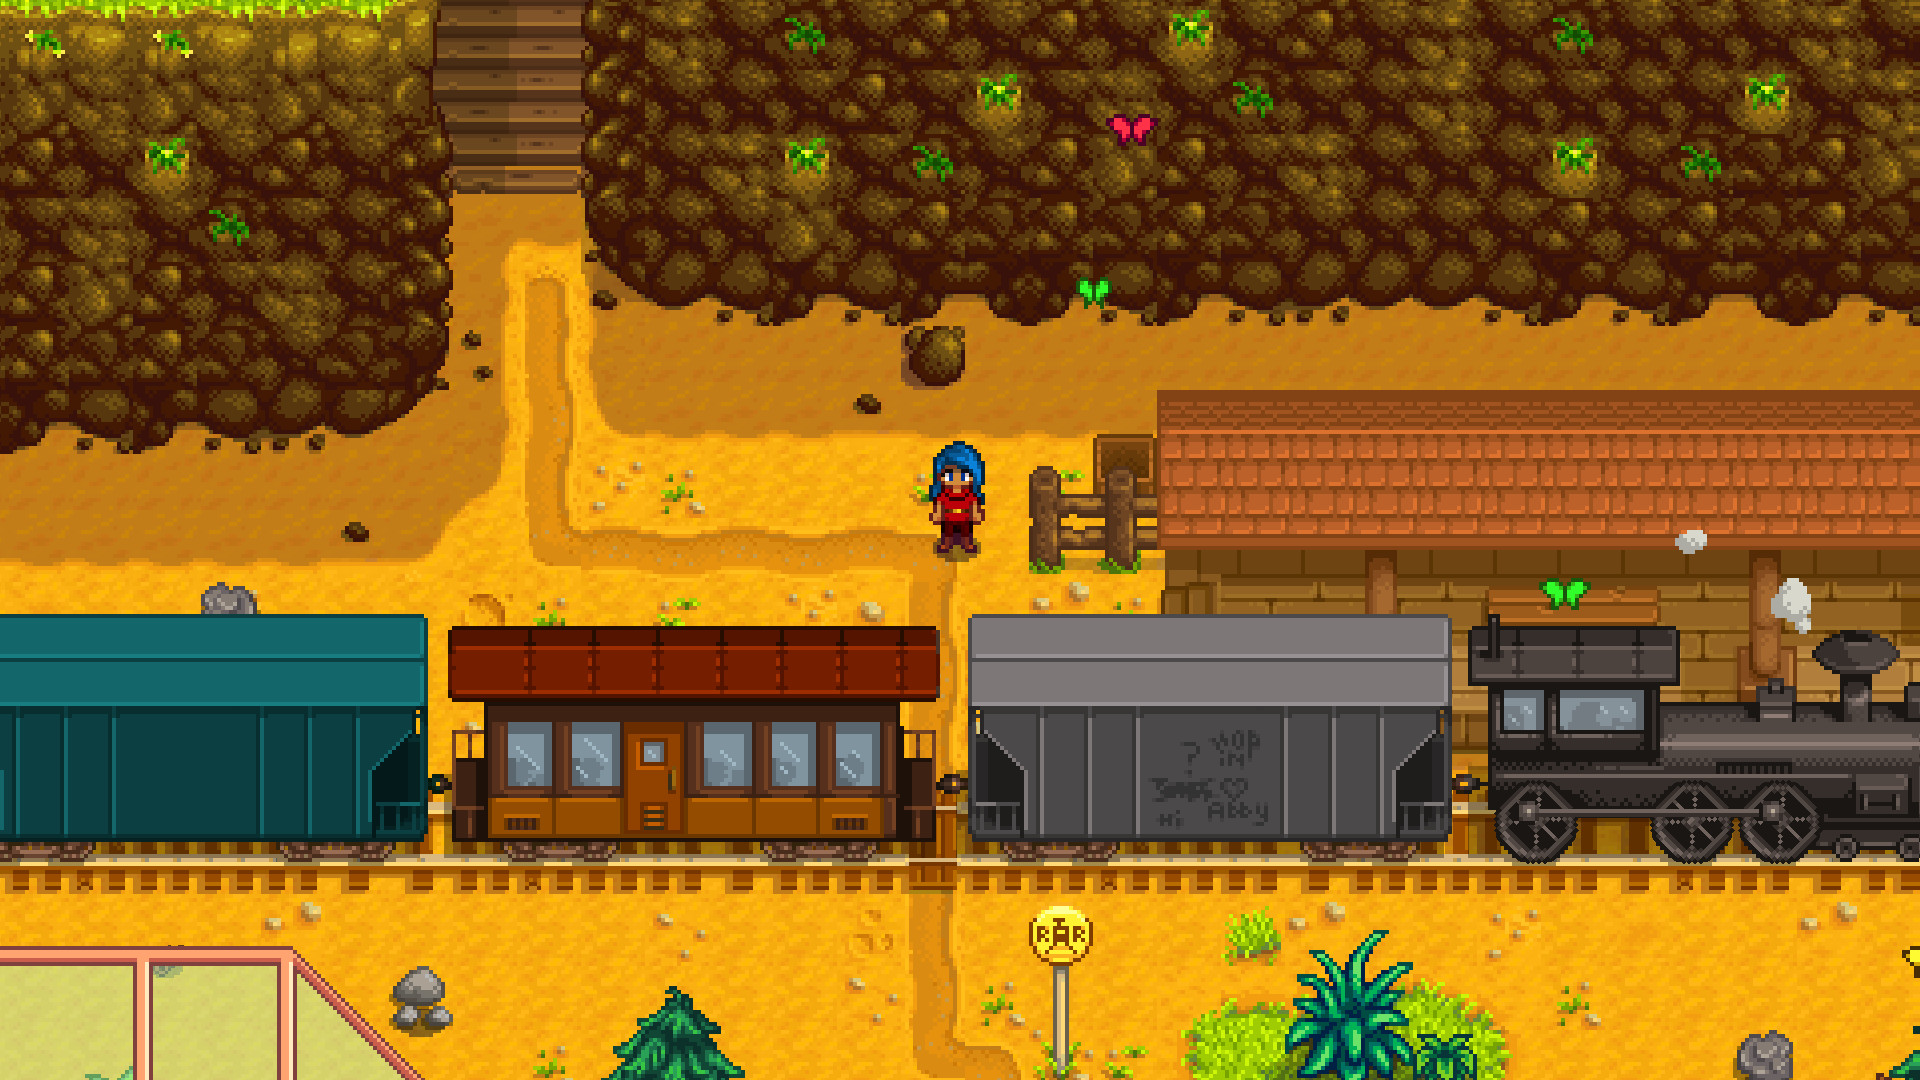 Stardew Valley On Steam Whether you upgrade your house, coop, barn, or whatever else, they will always stay the same size on the outfit. stardew valley